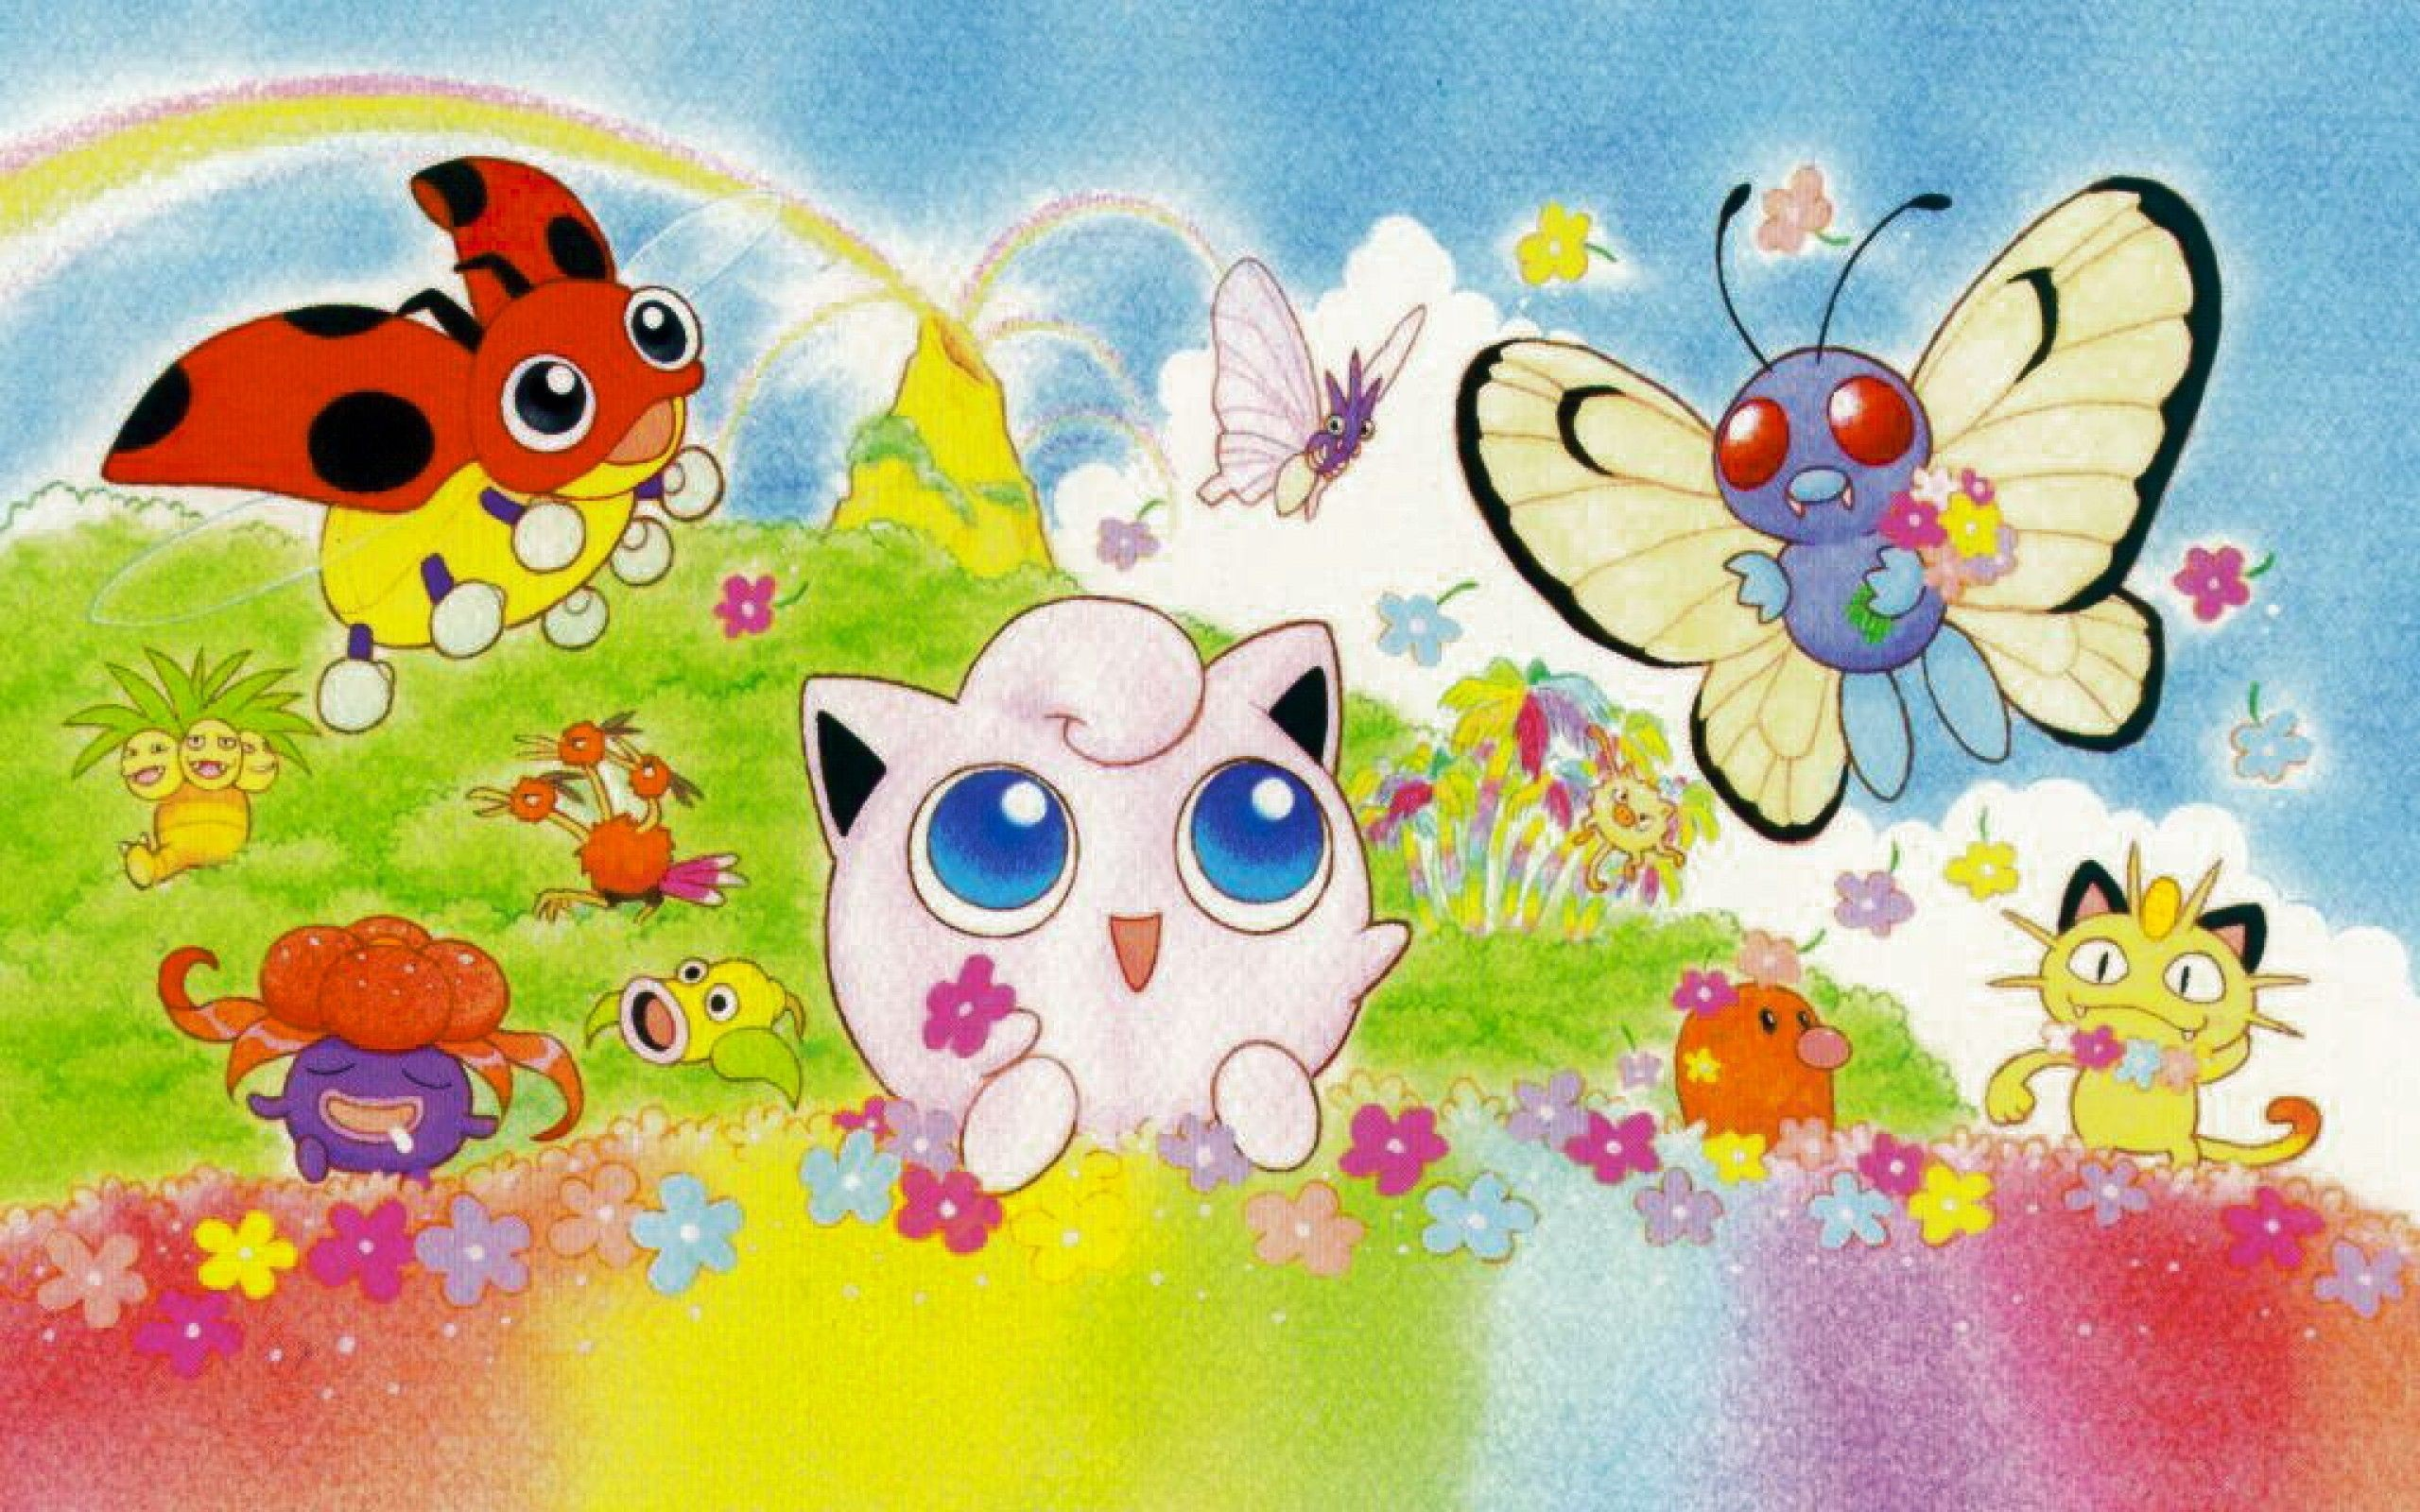 Res: 2560x1600, Cute Pokemon Wallpapers Full Hd For Free Wallpaper